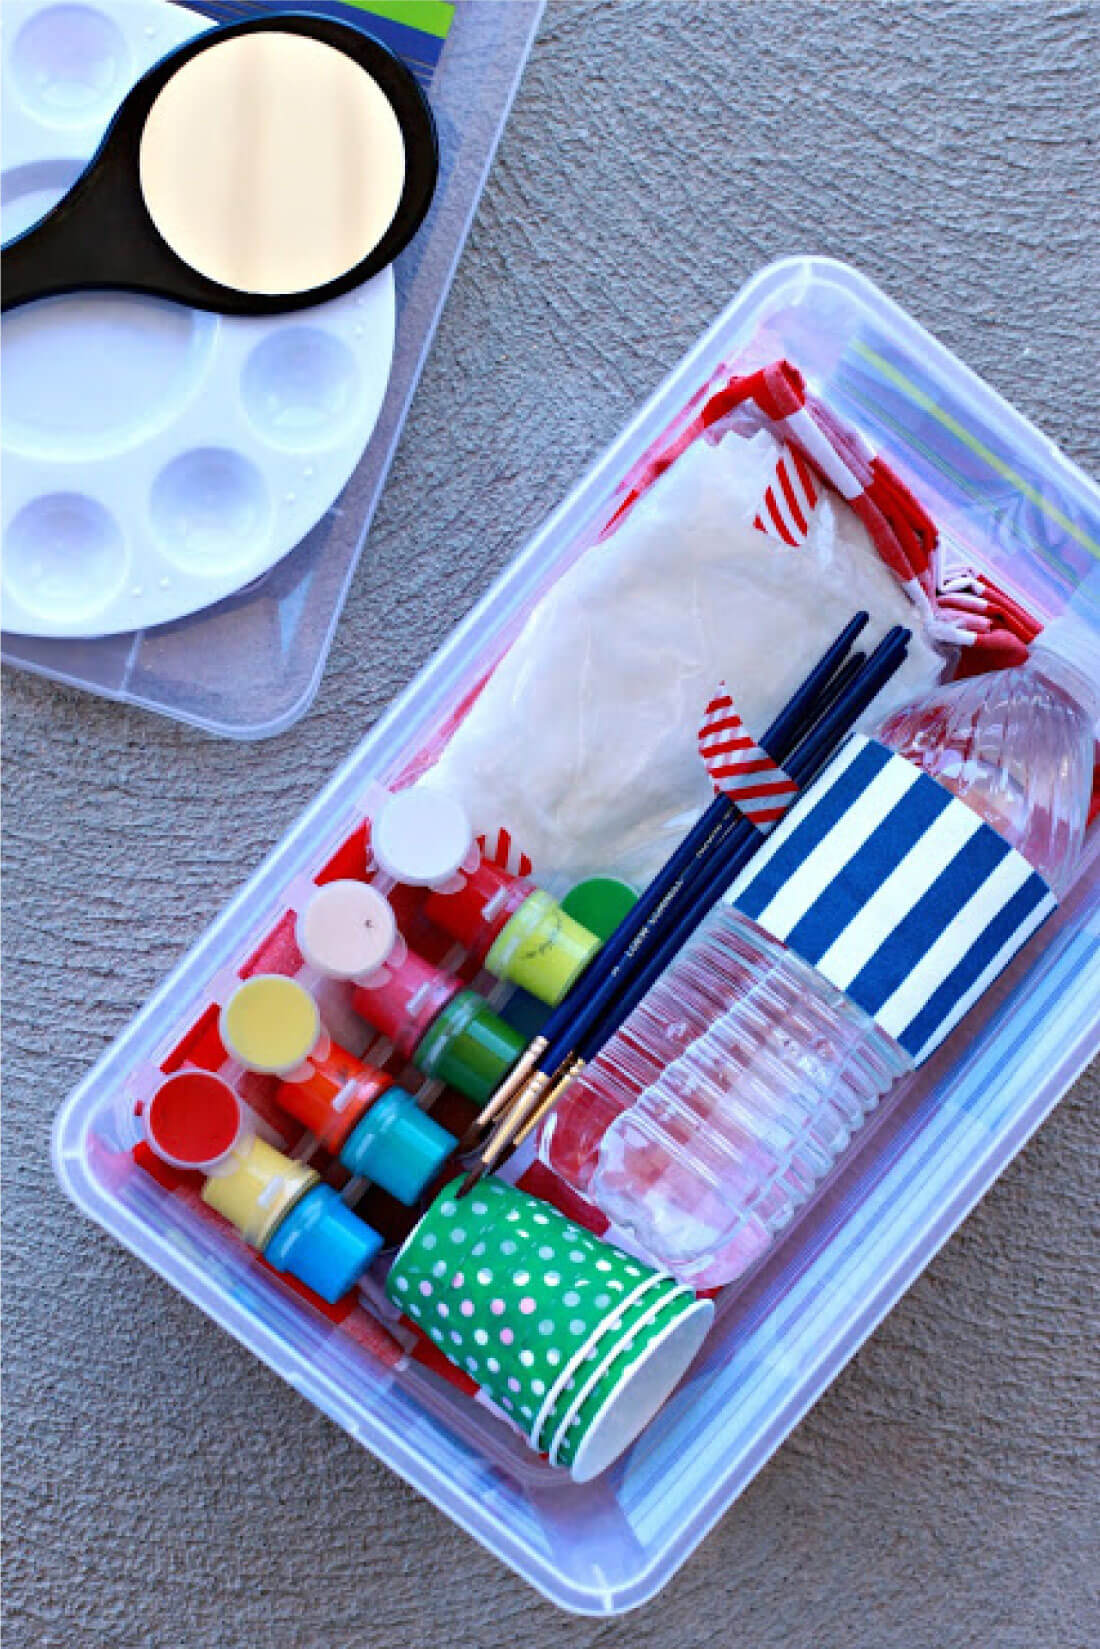 Portable Face Painting Kit - supplies needed to make this kit.